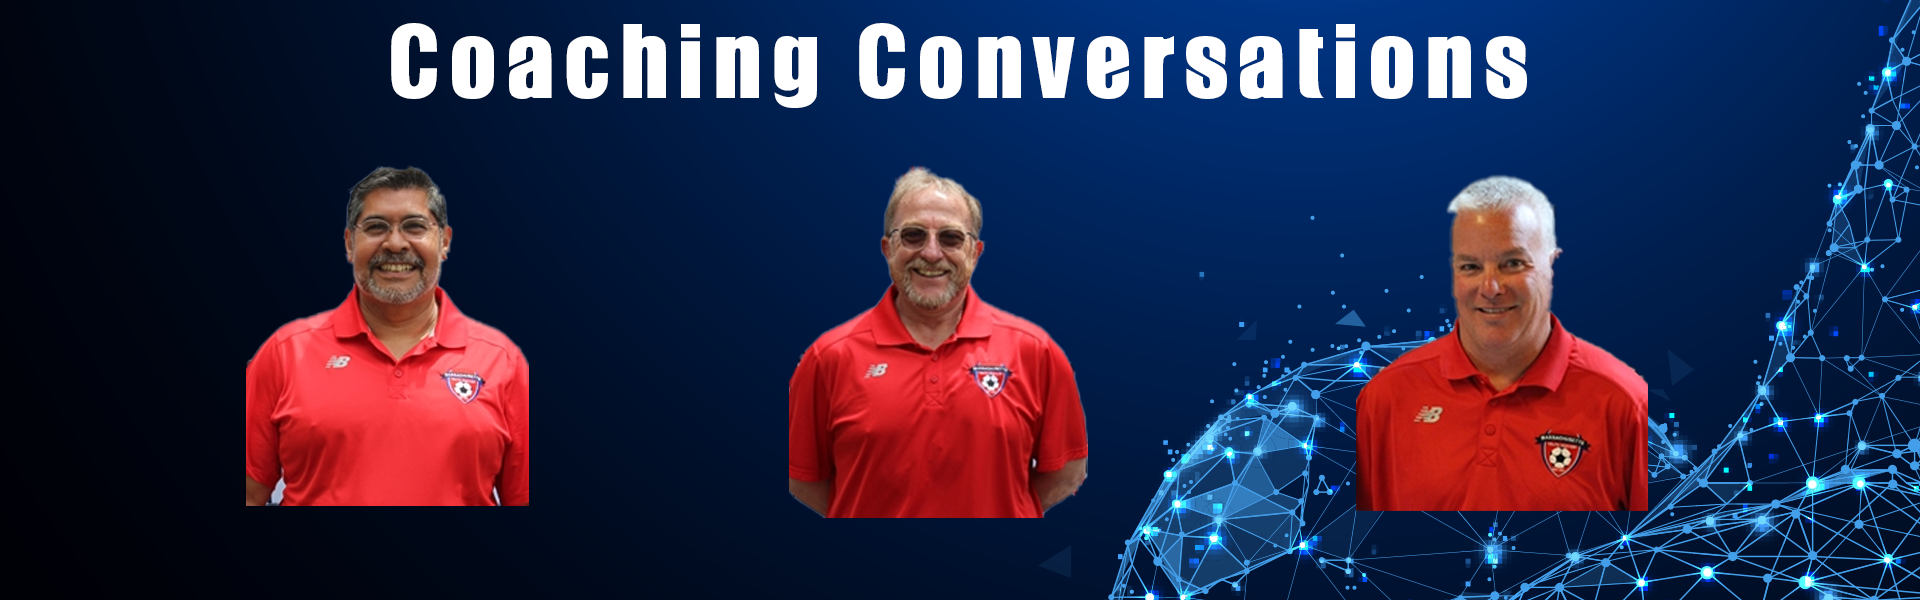 Coaching_Conversations_Header